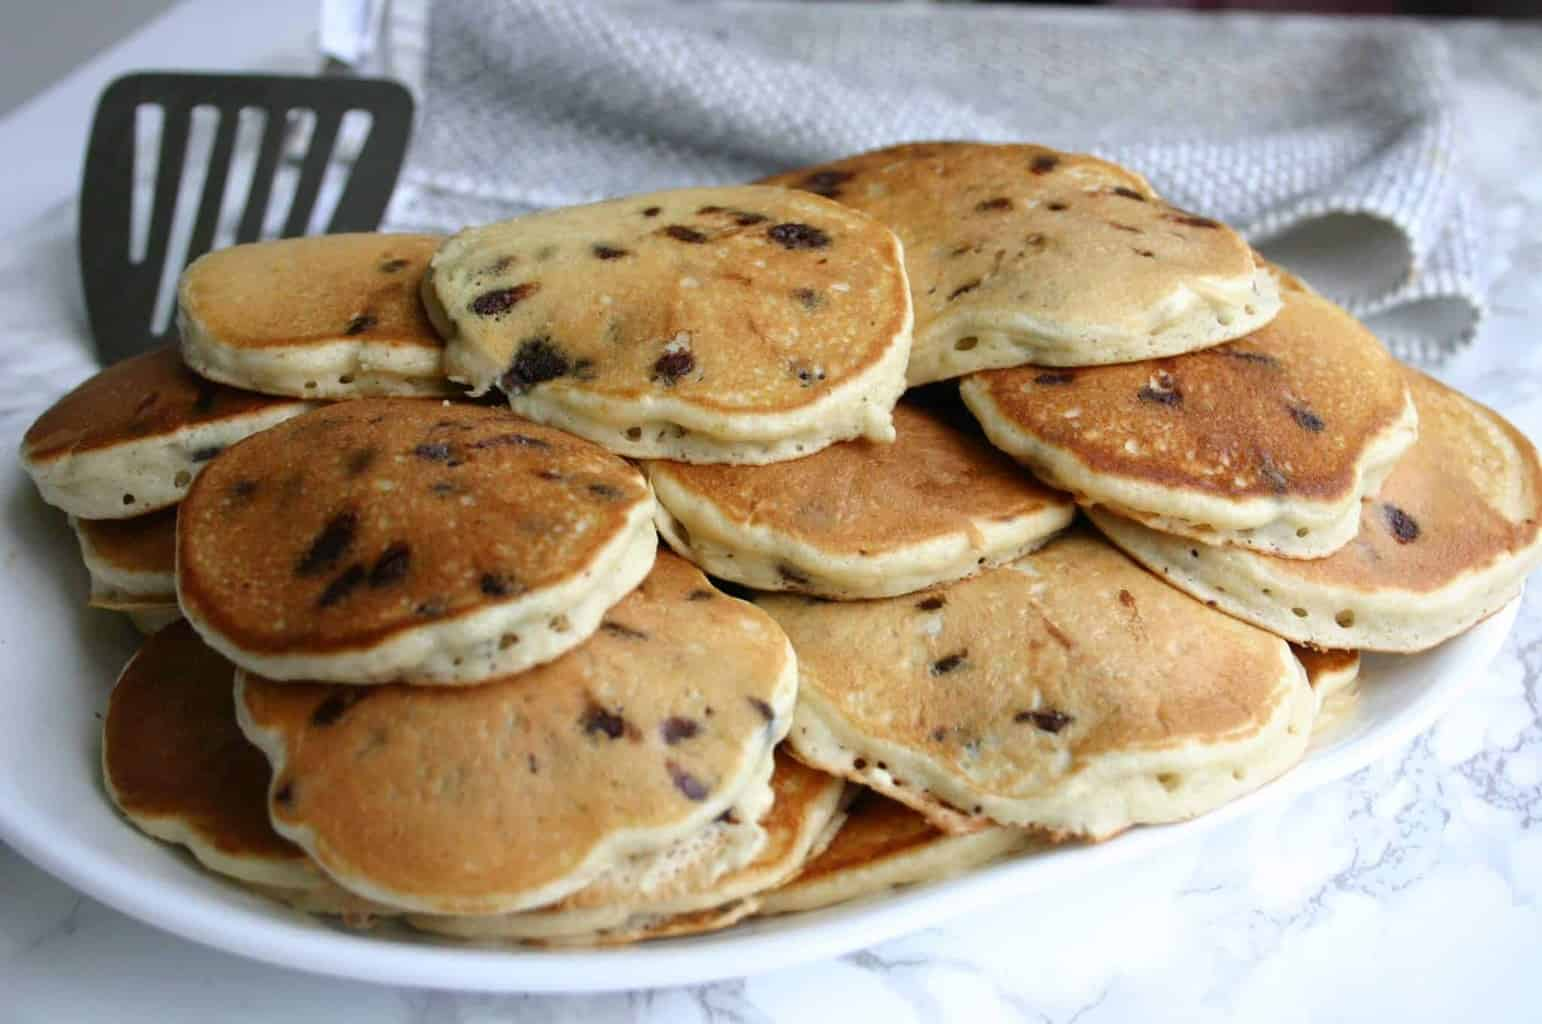 Best Chocolate Chip Pancake Recipe for the Freezer! Freeze extras and reheat in the microwave or toaster oven!